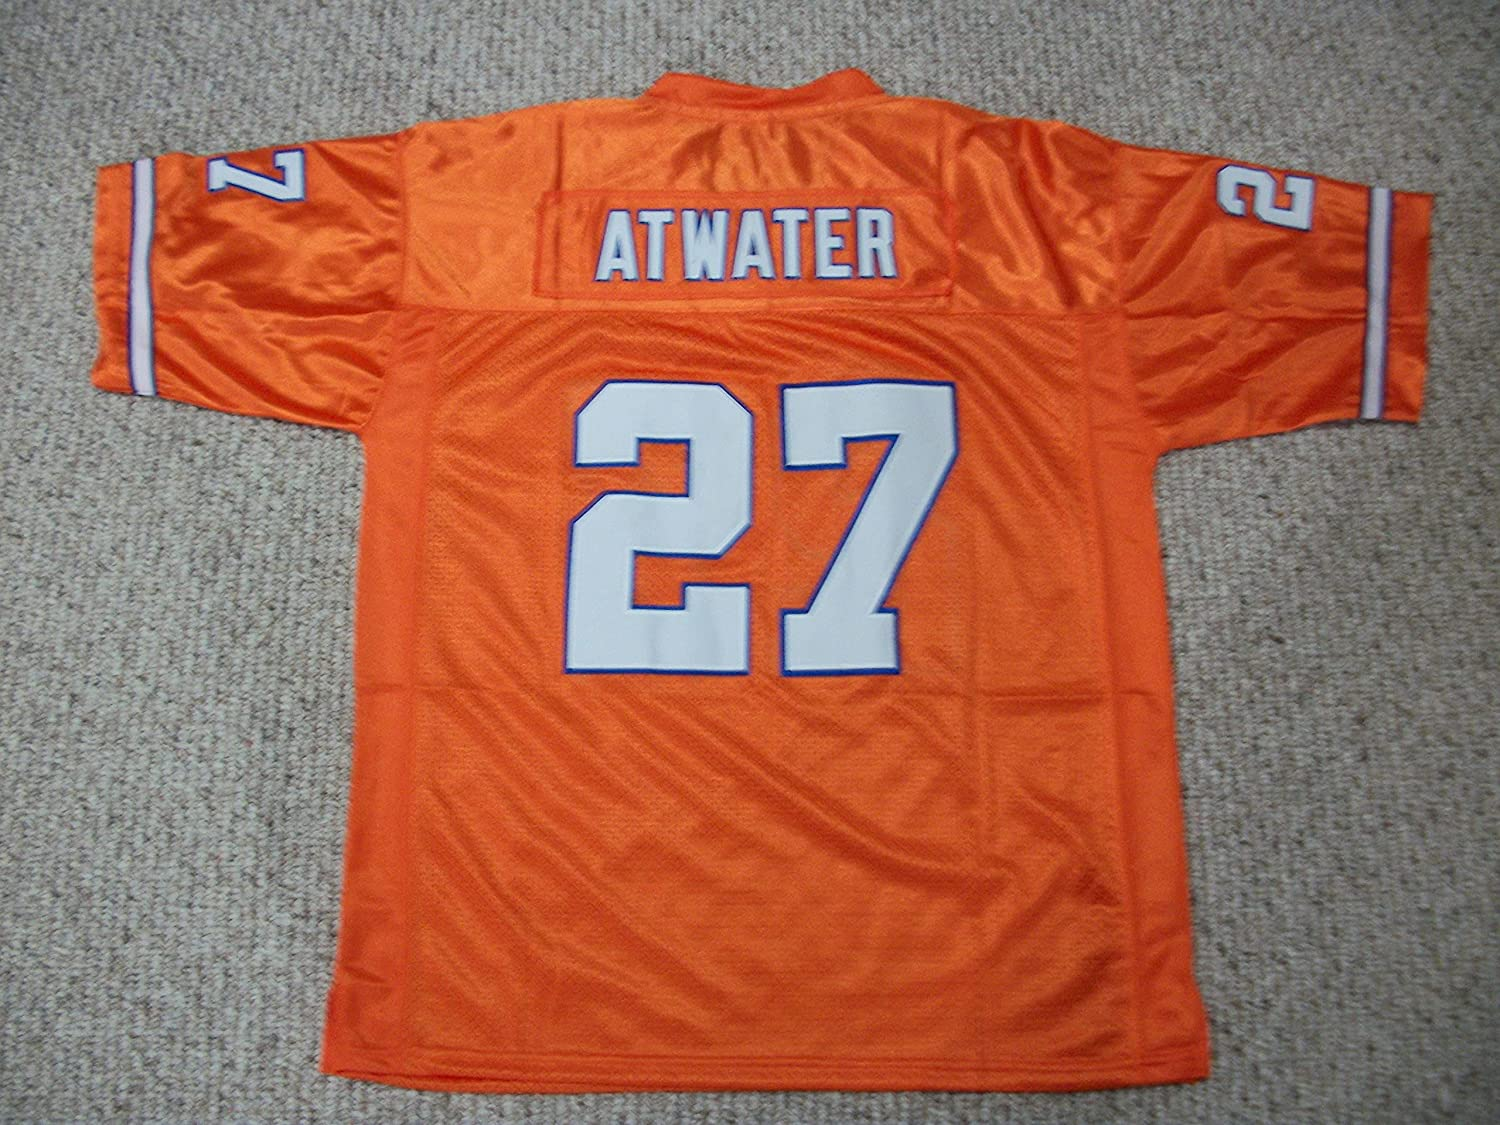 Unsigned Steve Atwater #27 Denver Custom Stitched Orange Football Jersey Various Sizes New No Brands/Logos